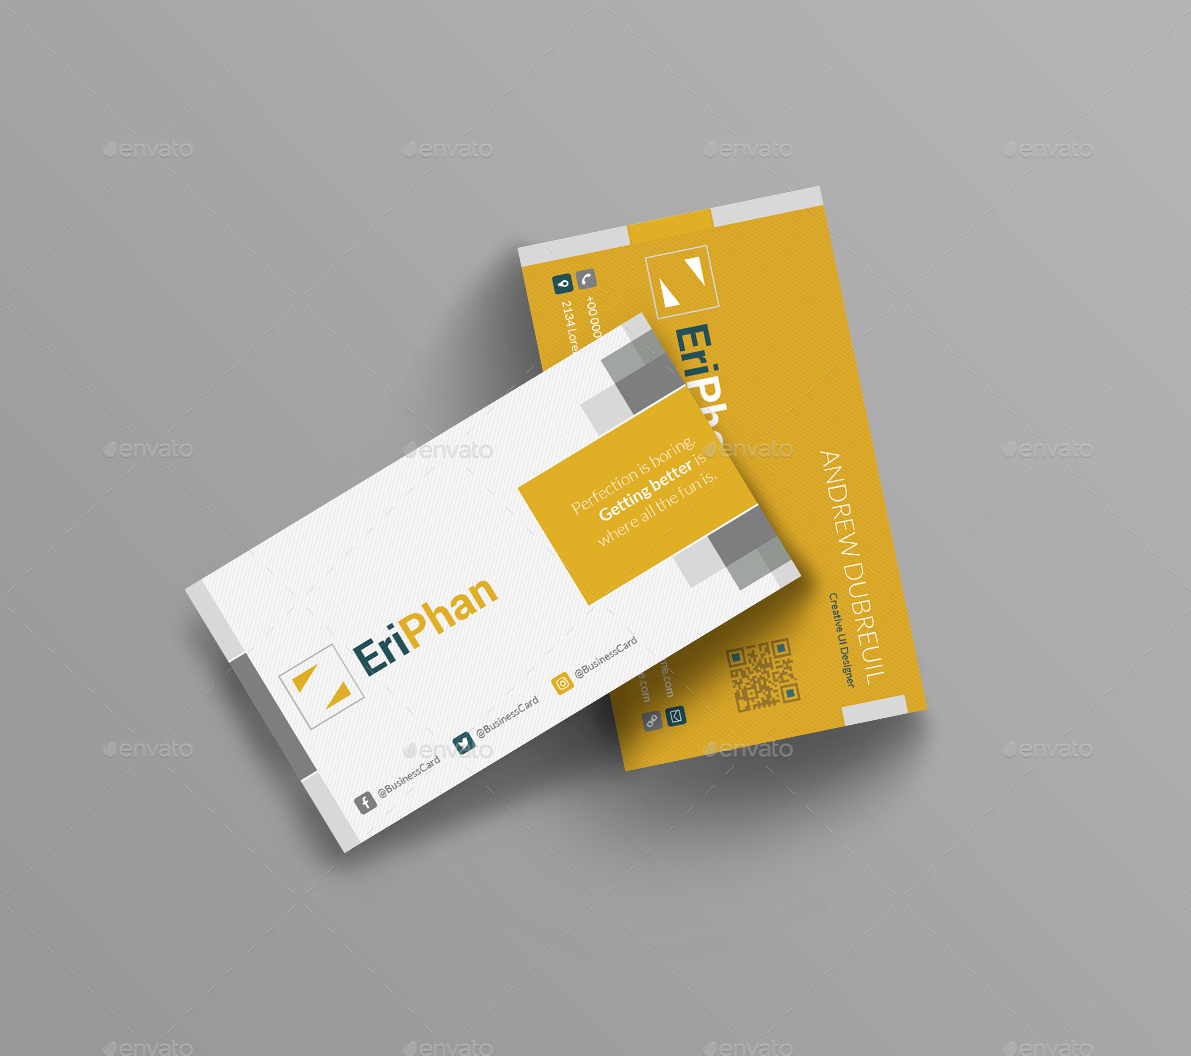 EriPhan Business Card by templatescraze | GraphicRiver